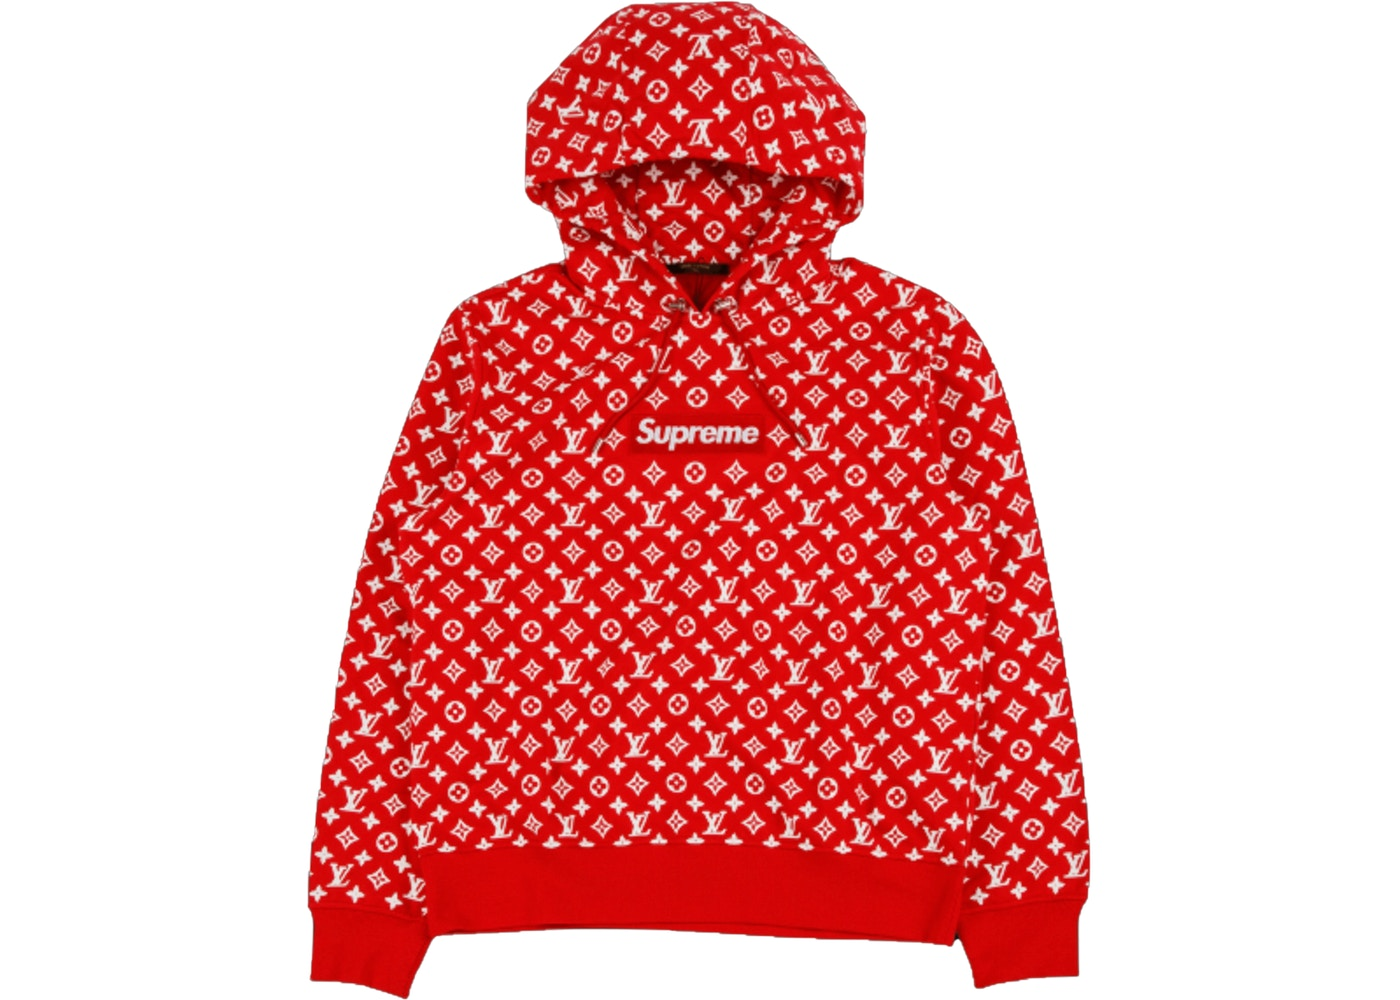 Supreme x Louis Vuitton Box Logo Hooded Sweatshirt Red